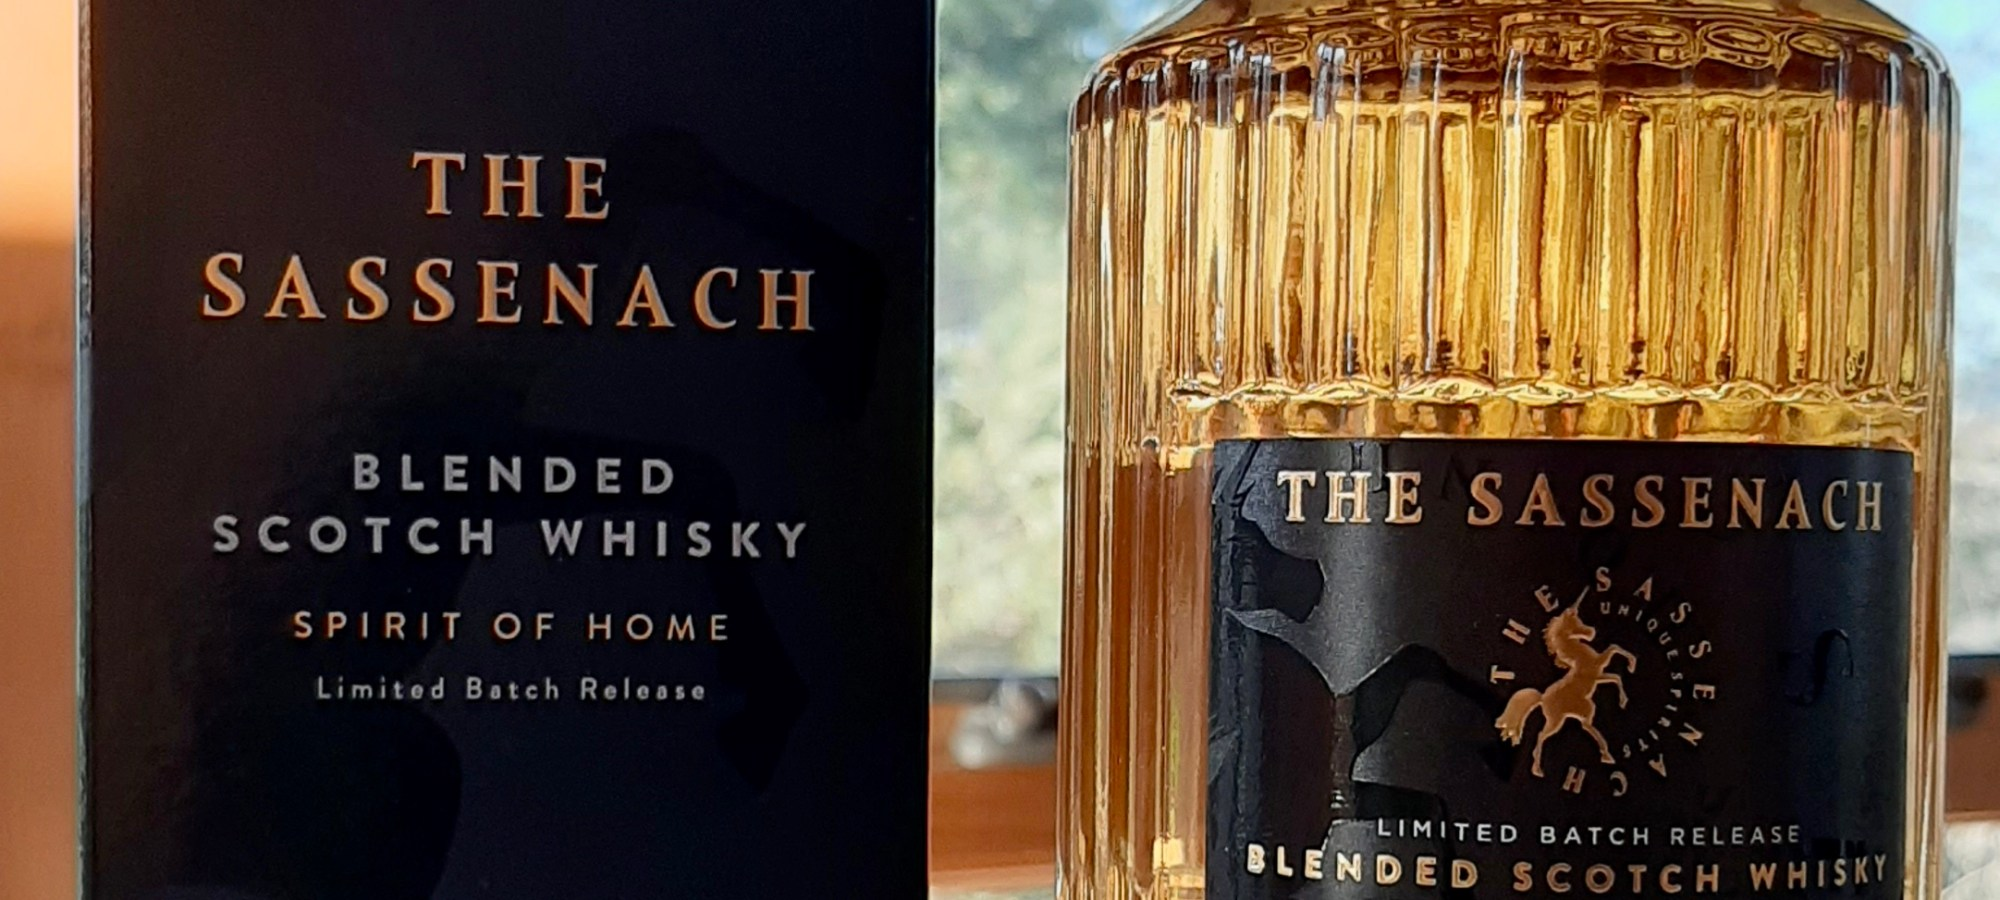 a box and bottle of The Sassenach Blended Scotch Whisky